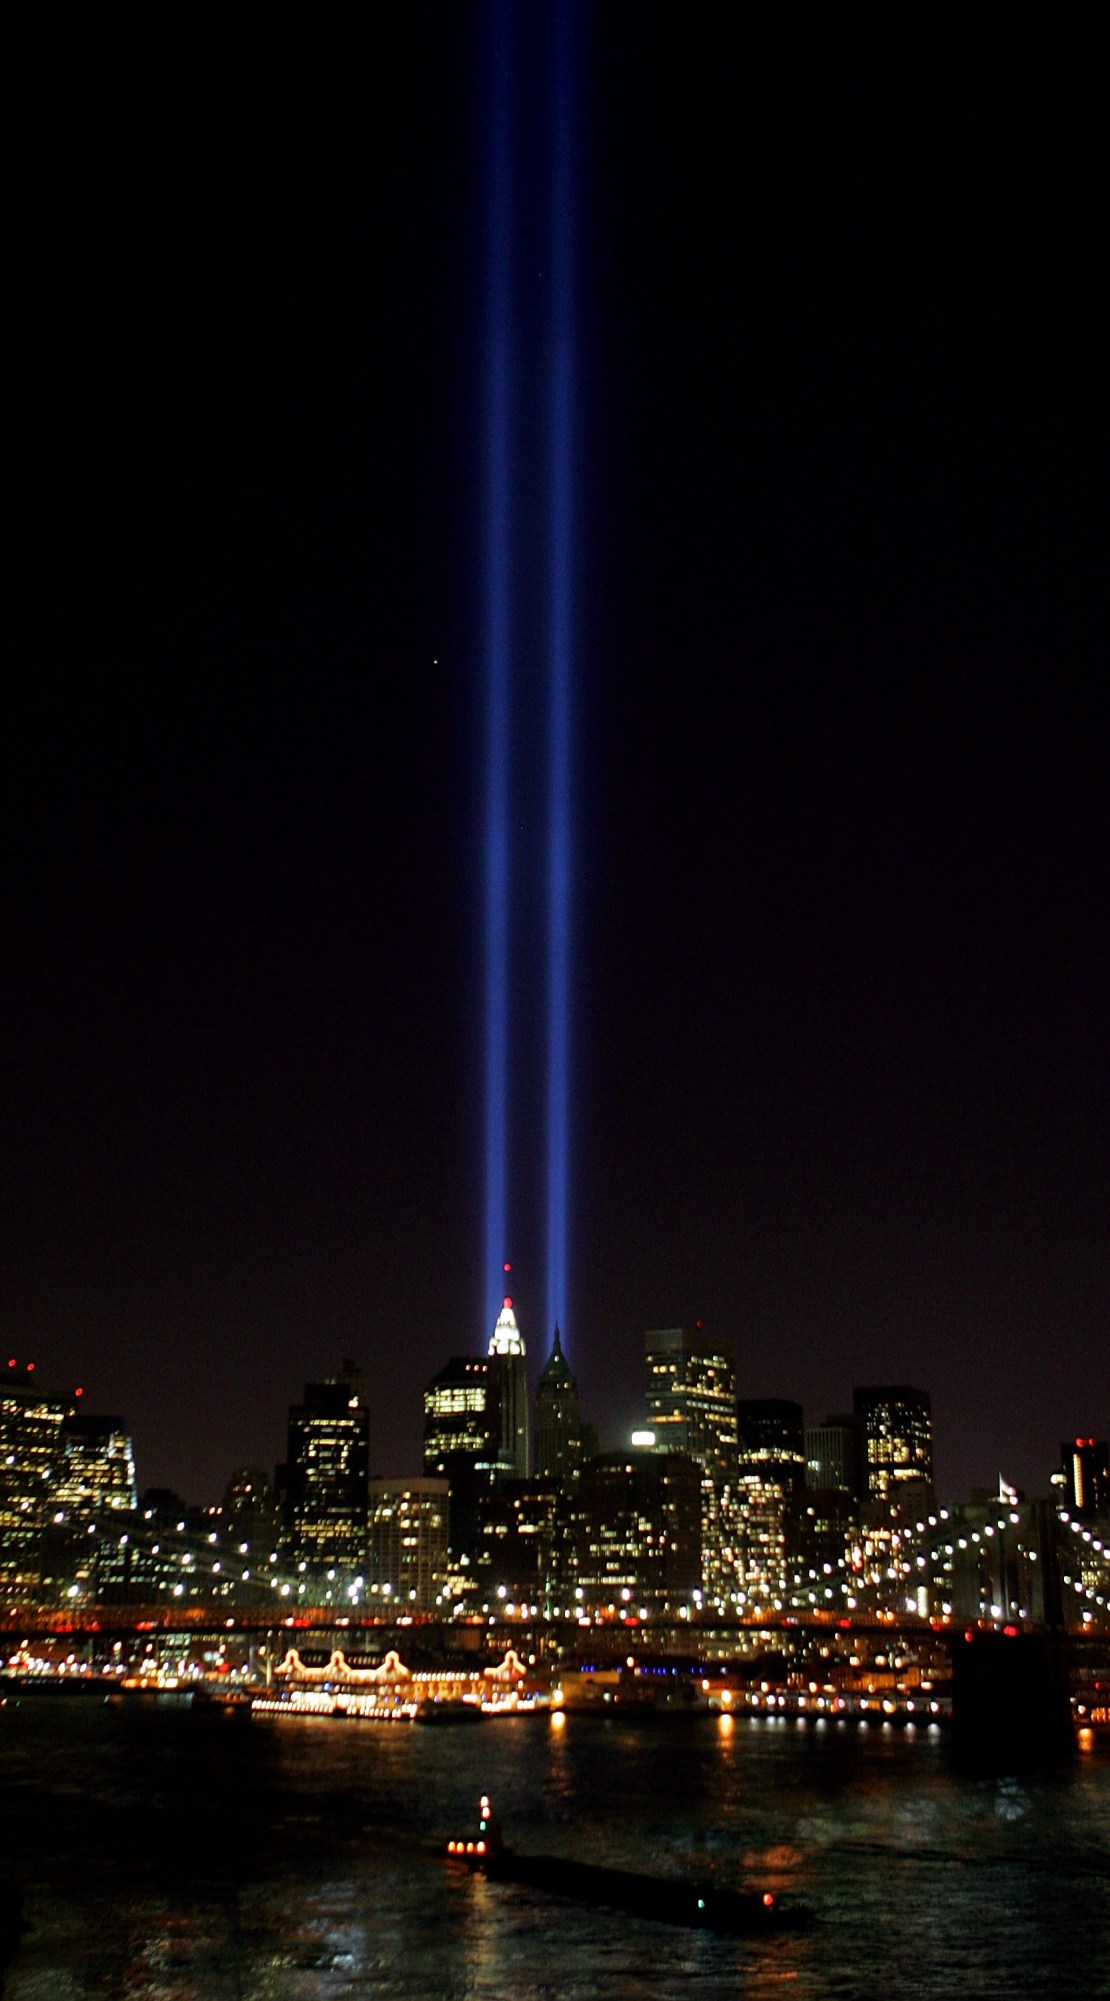 NEW YORK - SEPTEMBER 11: Beams of light shine into the sky behind the Brooklyn Bridge and above the Manhattan skyline on September 11, 2005 in New York City. The lights pay tribute to those who lost their lives when the World Trade Center was attacked four years ago. (Photo by Daniel Berehulak/Getty Images)